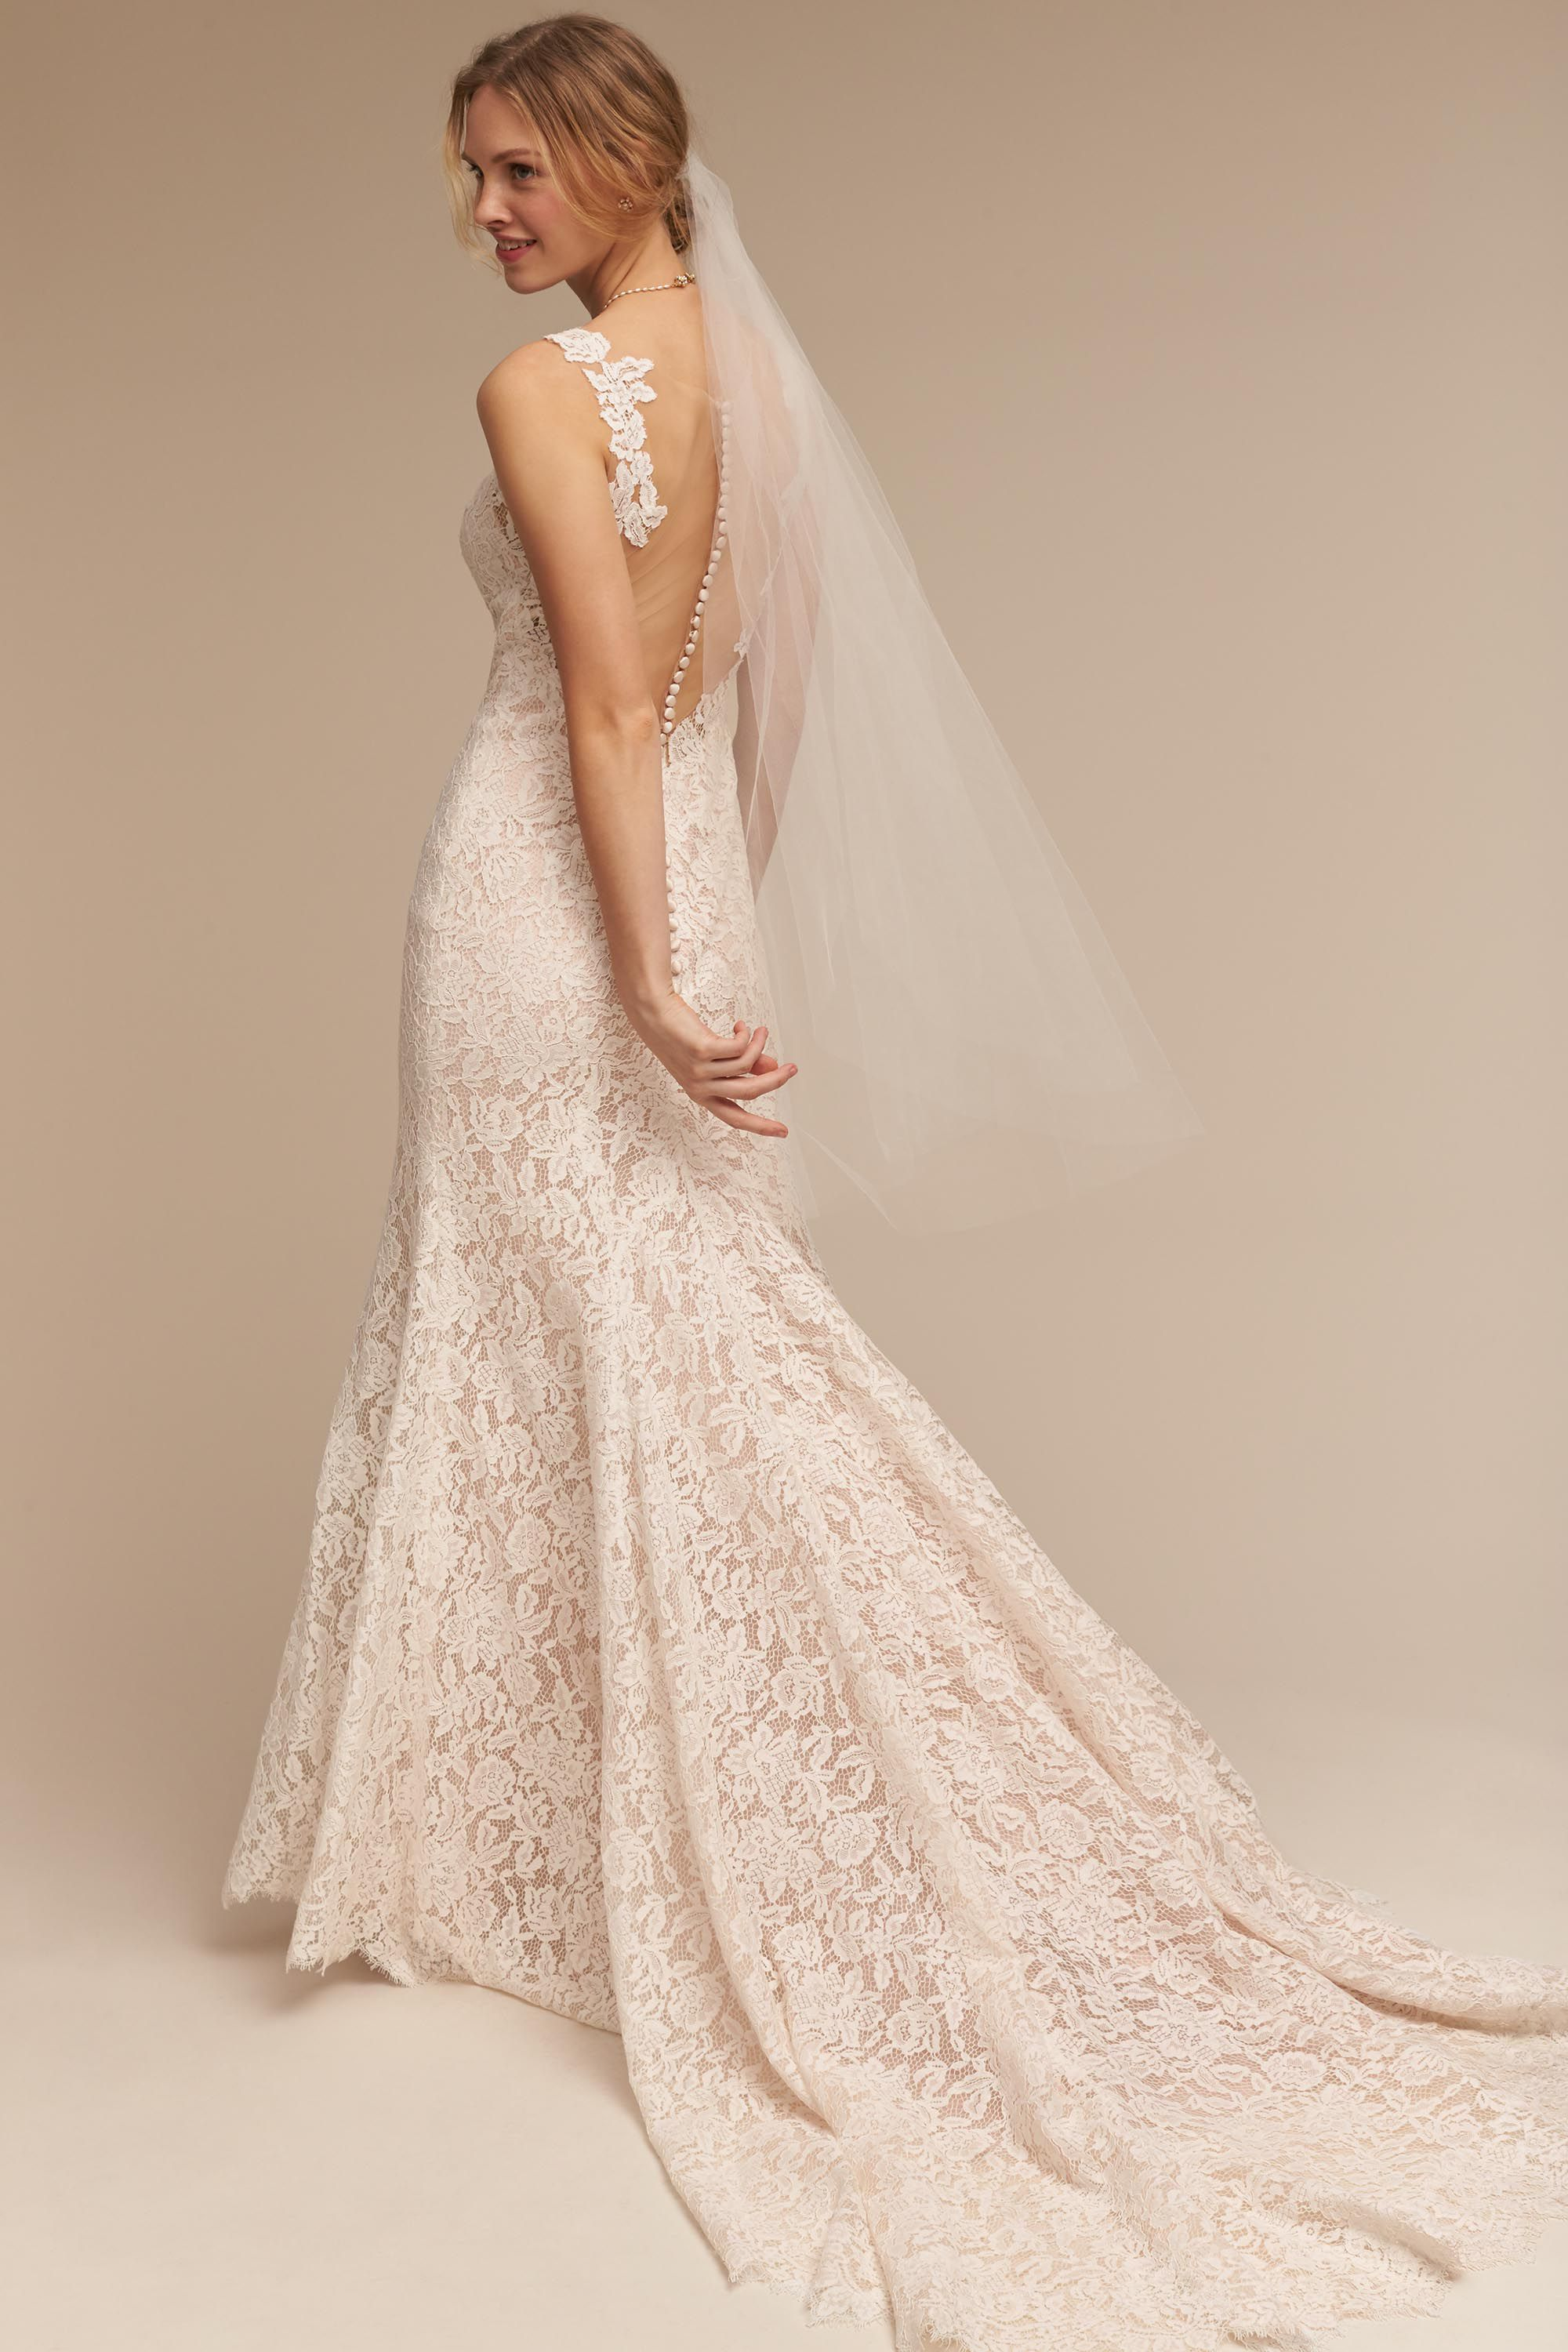 Wedding Wedding Dress Lace lace wedding dresses vintage gowns bhldn carson gown gown